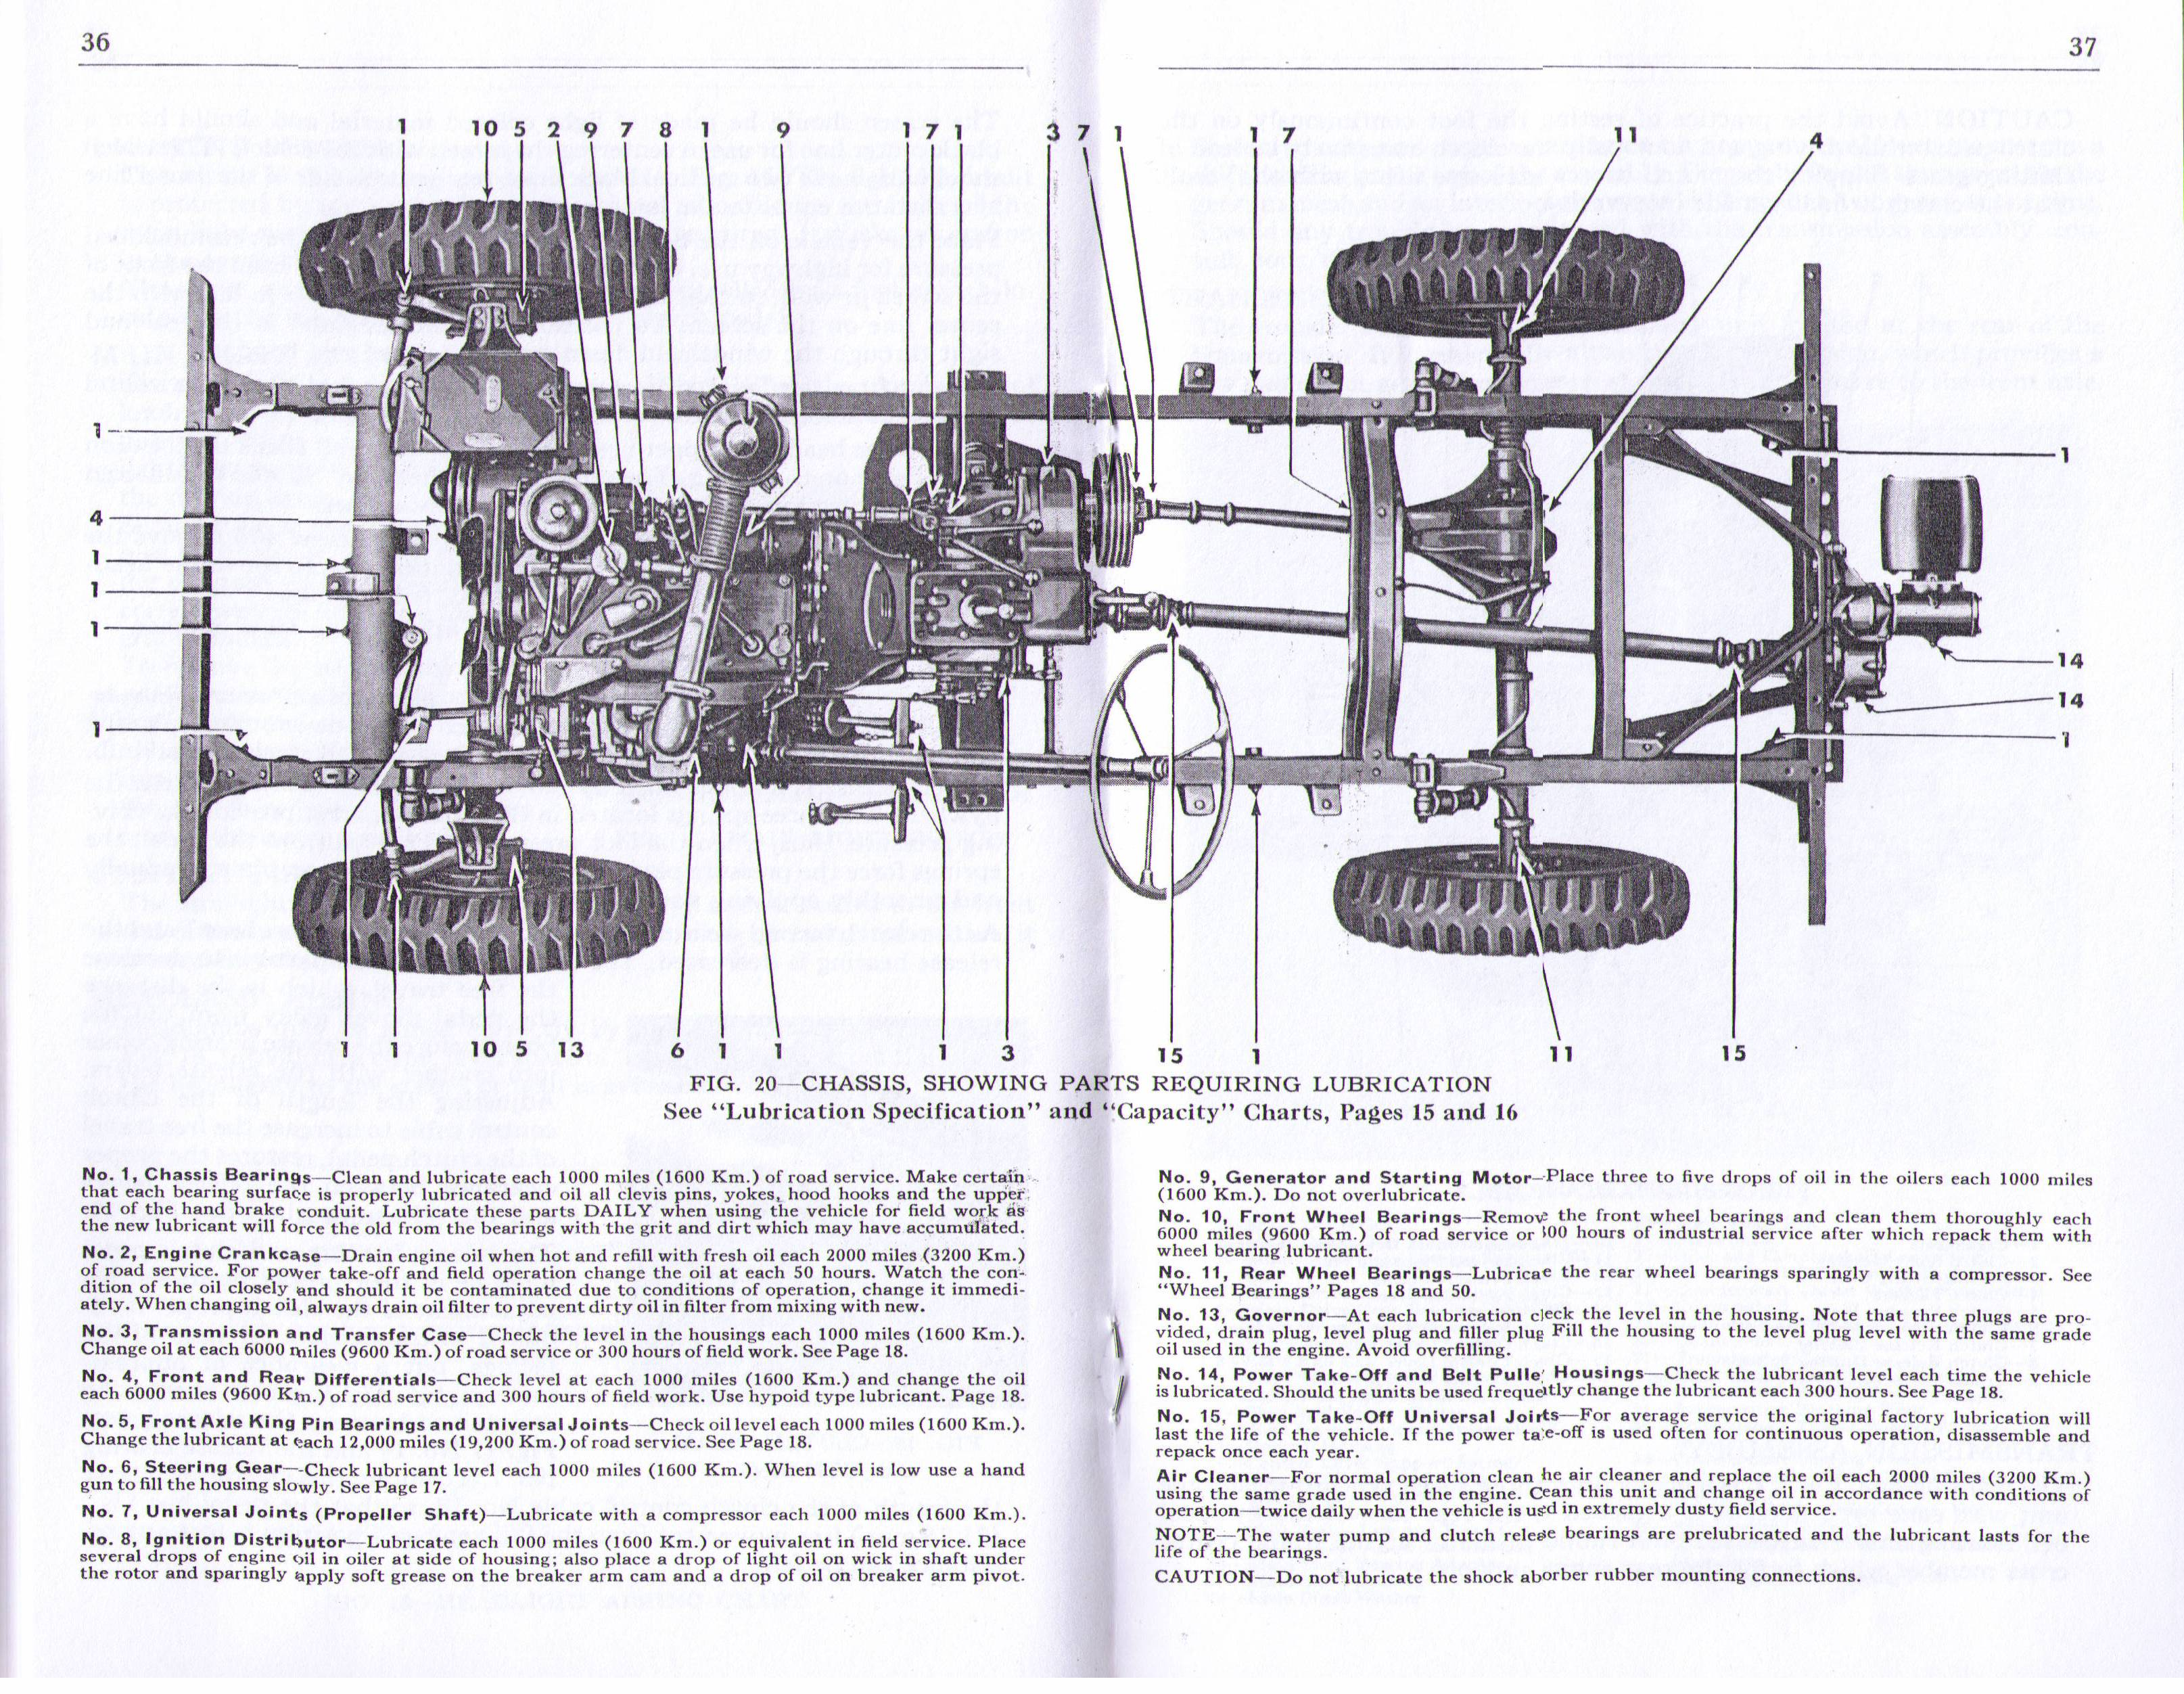 Cj3aownermanual 36 37